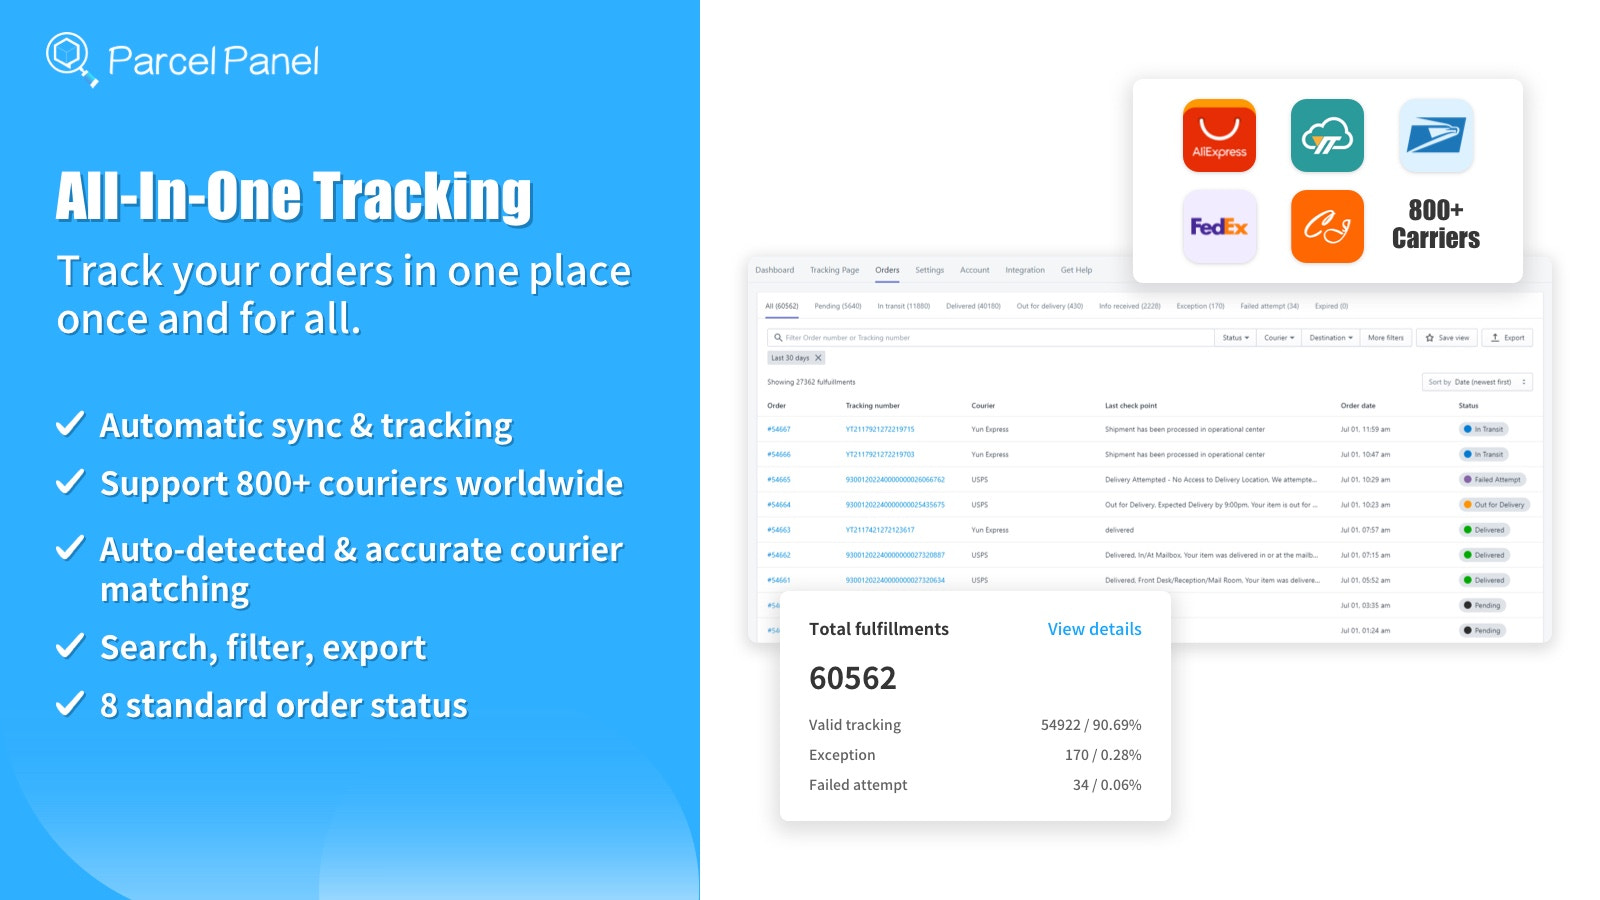 All-in-one tracking